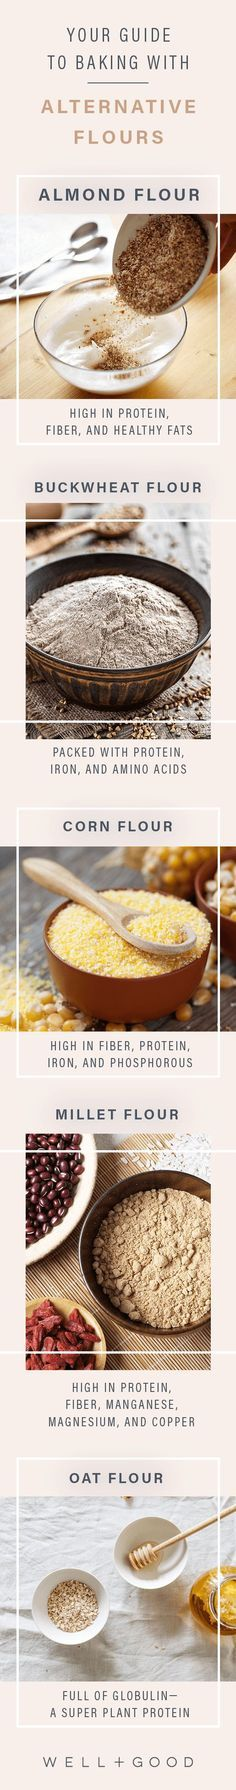 How to cook with alternative flours